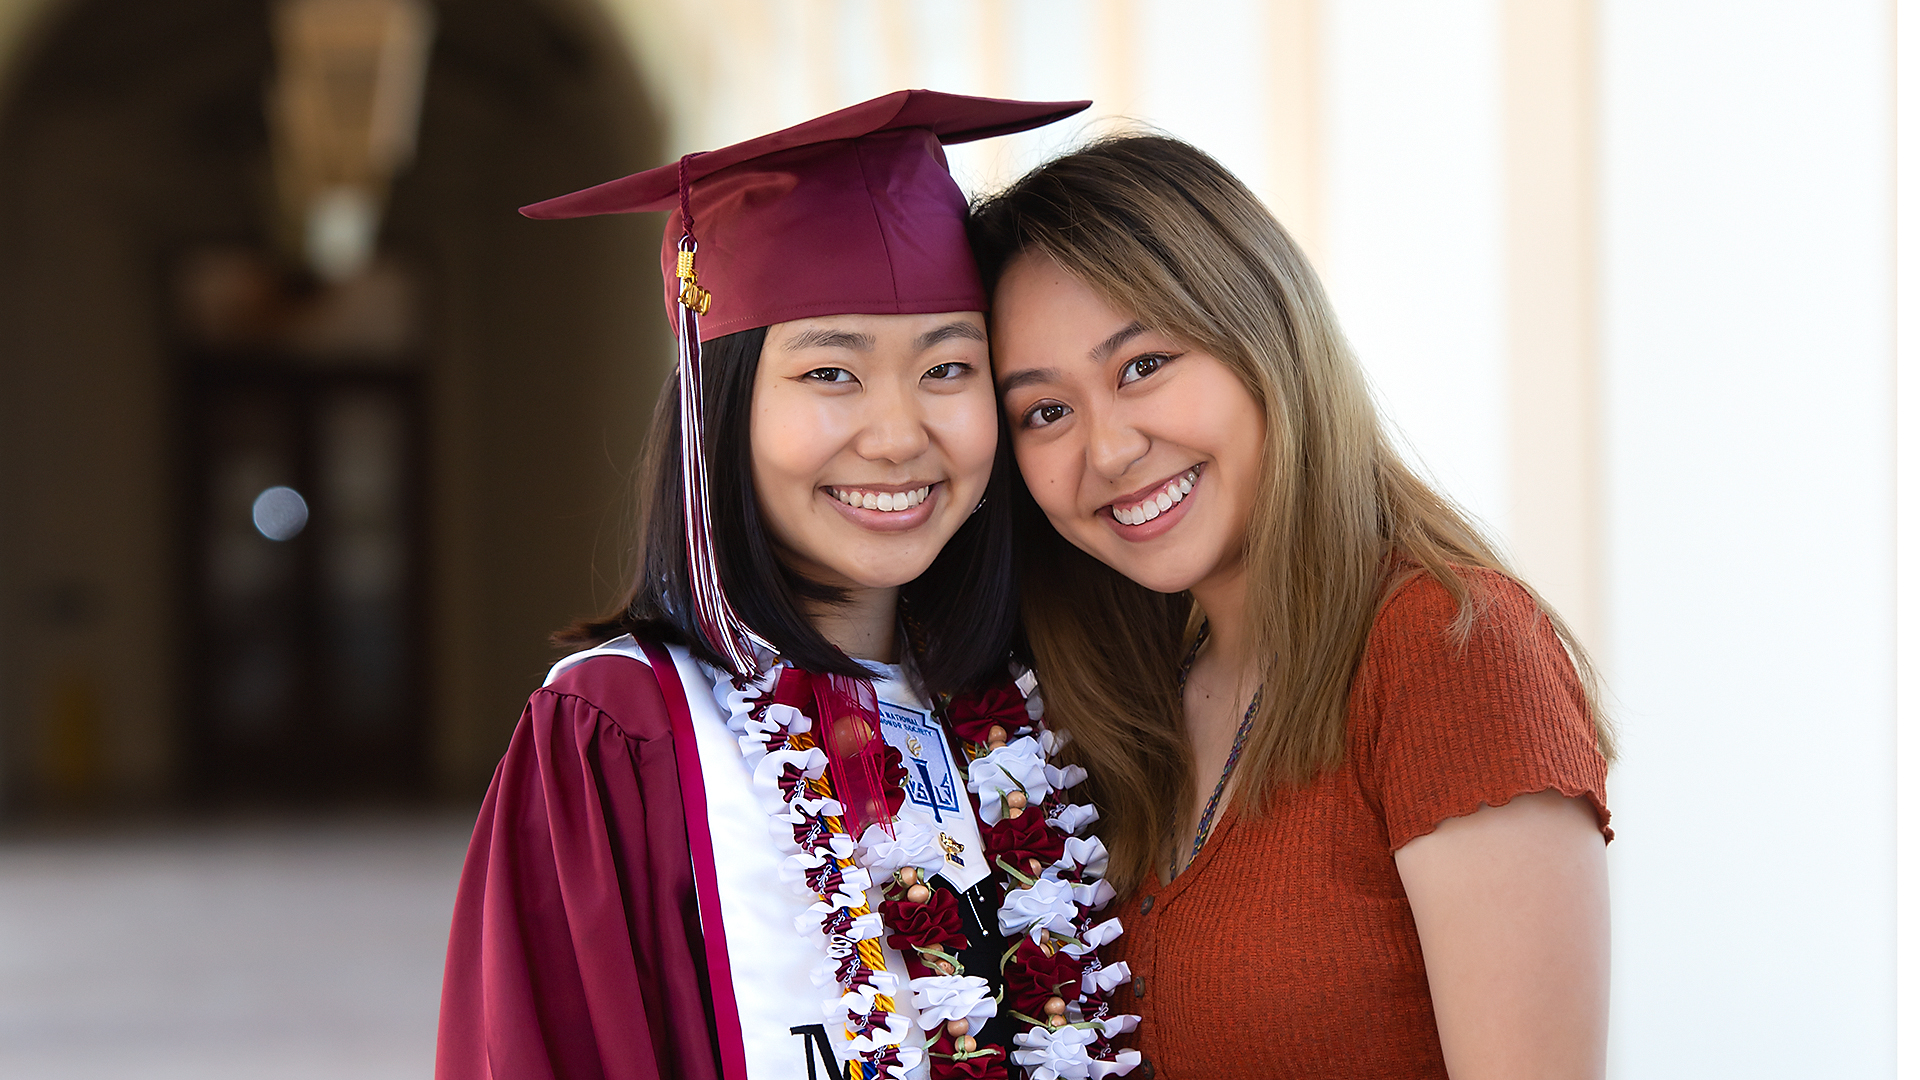 Class of 2021, Graduation, Graduation Portraits, On Location Photography, Pasadena City Hall, Los Angeles Portrait photographer, Seniors, Senior Portrait Session, Senior Portraits, Senior Portrait photography, Akiko Whalen Photography, Prom, Prom Dress, Prom Photography,